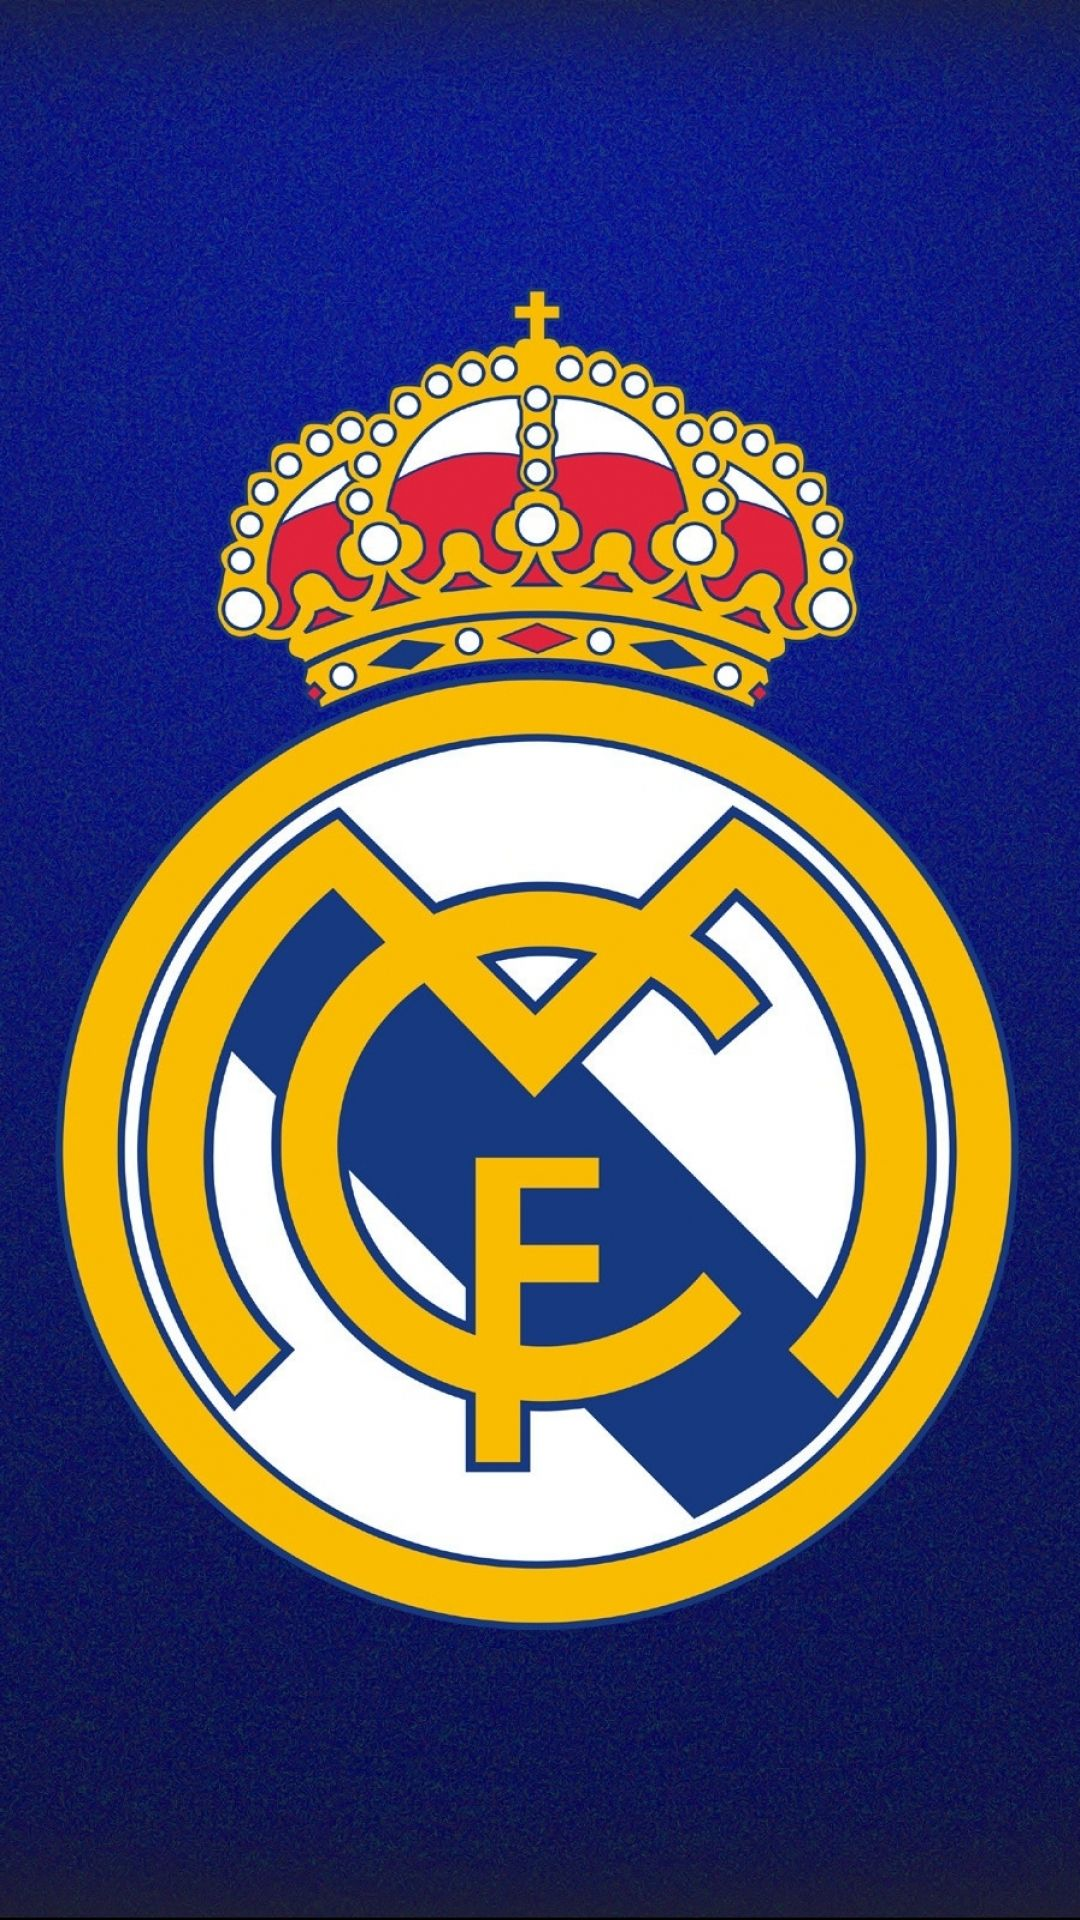 Must see Wallpaper Logo Real Madrid - 48d39d1f0284b4679514b8532c997df8  You Should Have_168498.jpg